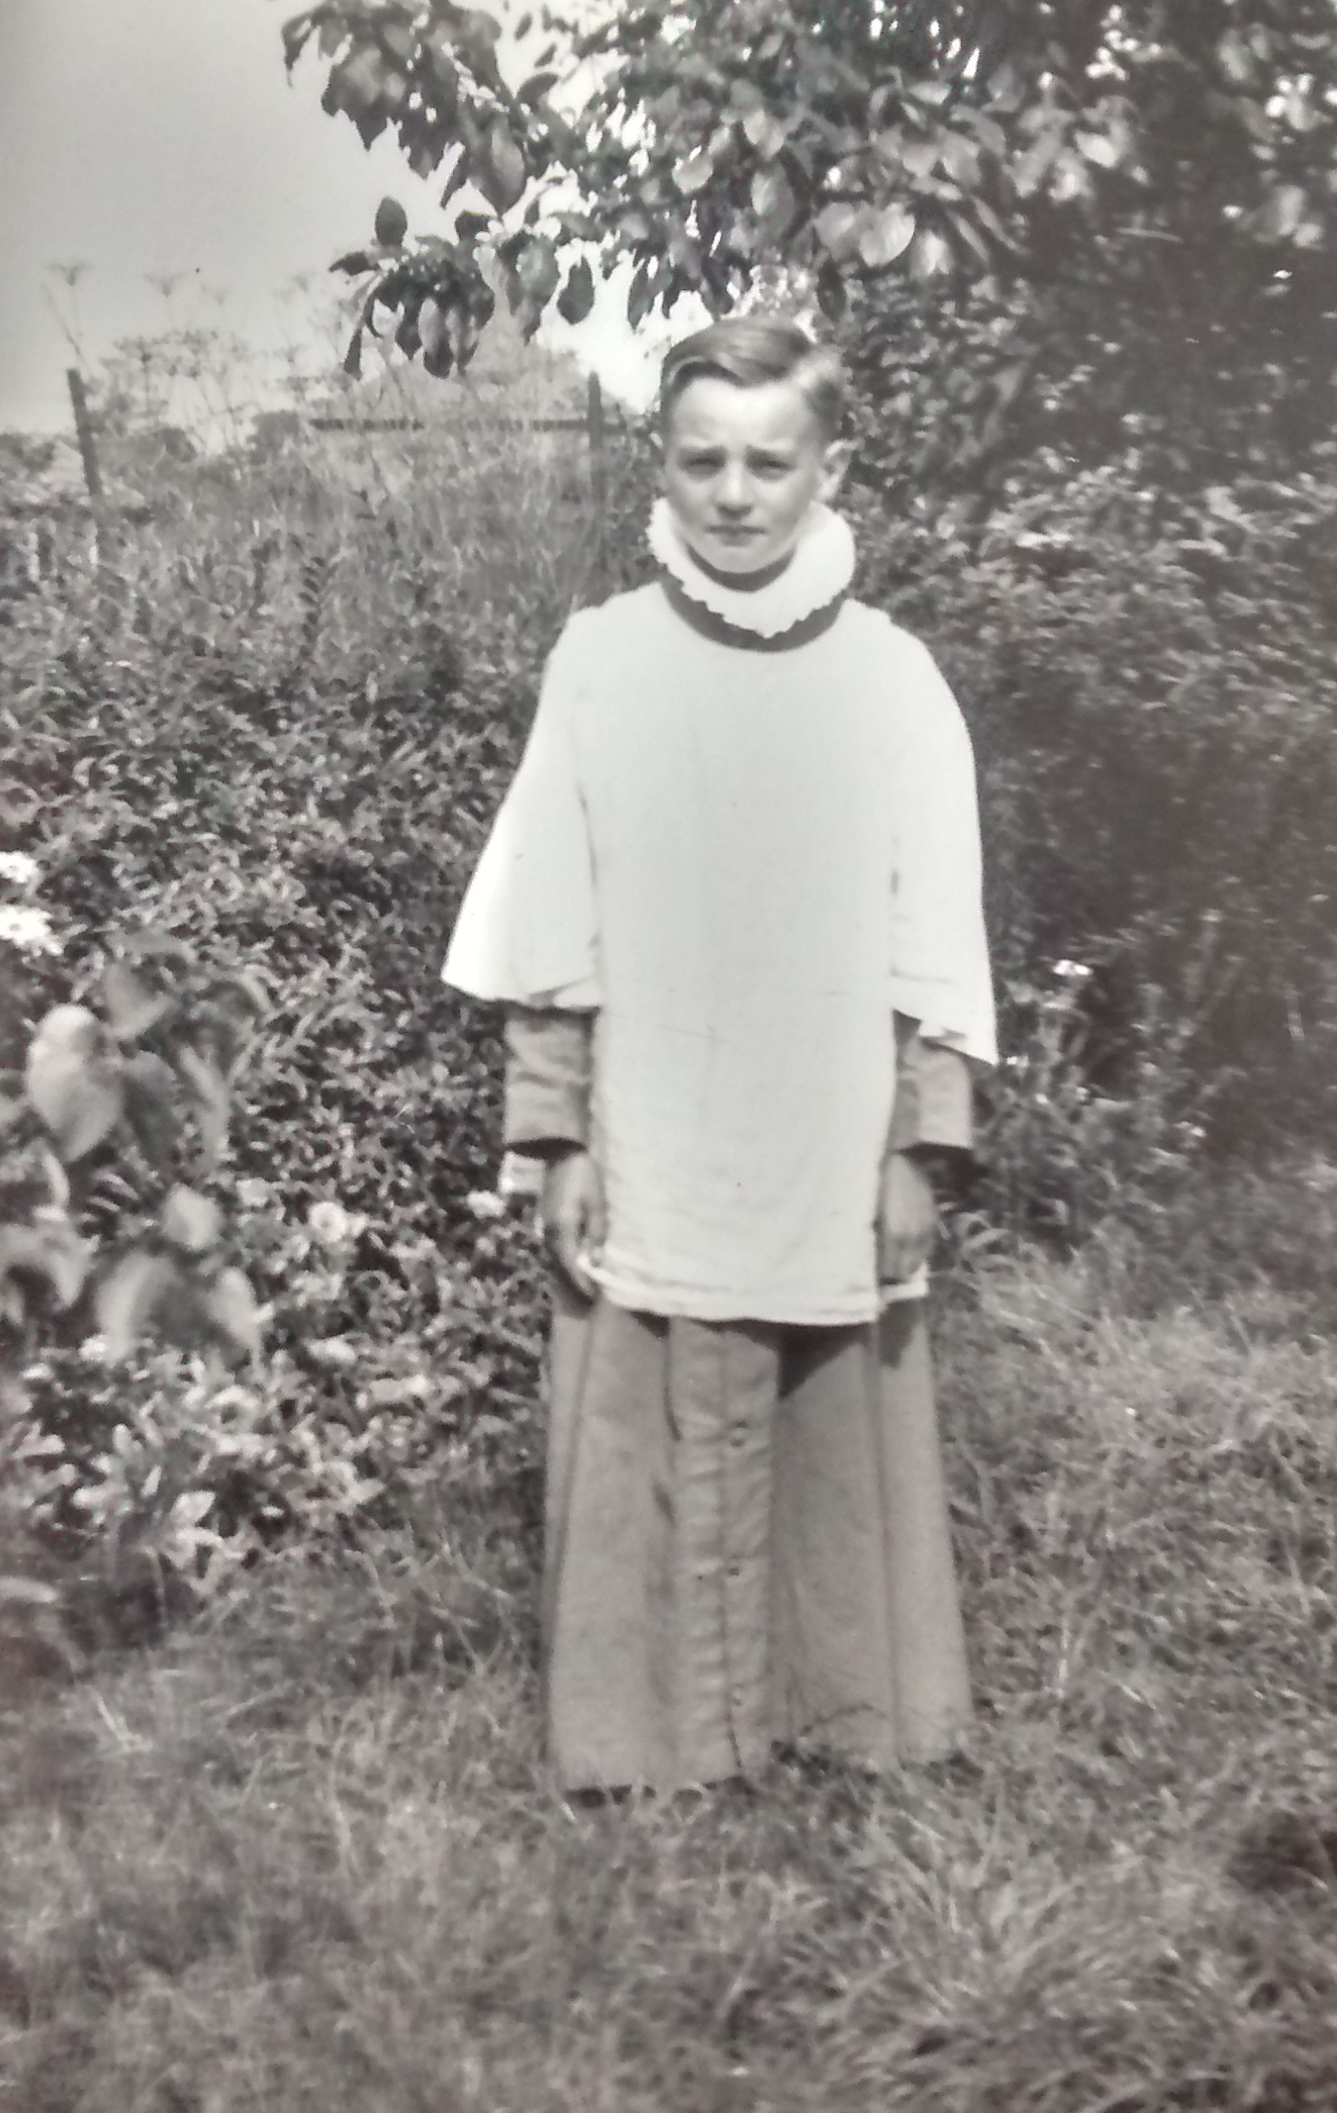 Chorister (Chris Poole) from the choir of Holy Trinity Church. Photograph taken c. 1935.